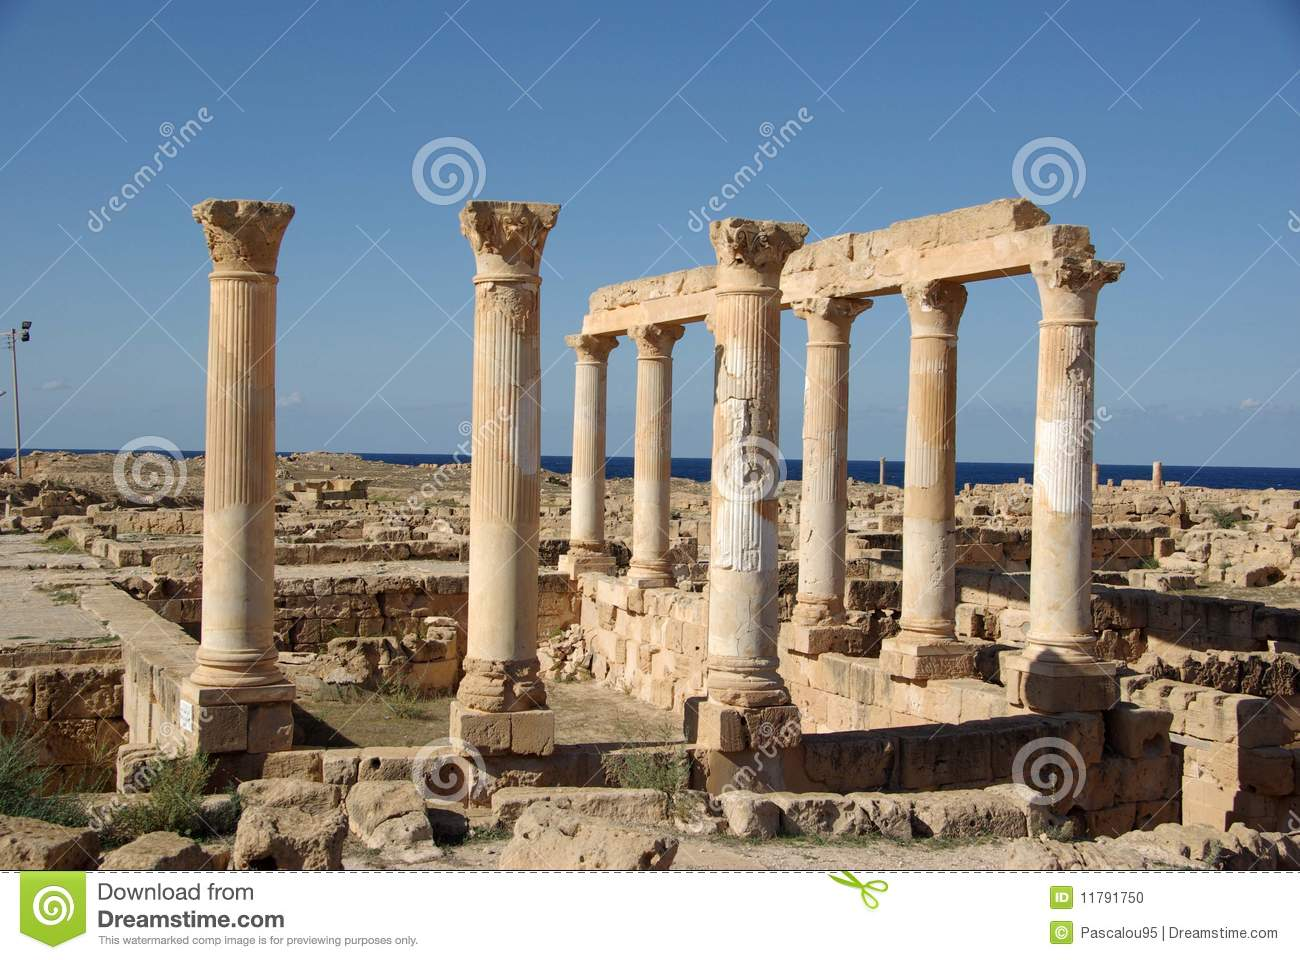 Roman Ruins Of Sabratha, Libya Stock Photo - Image: 11791750